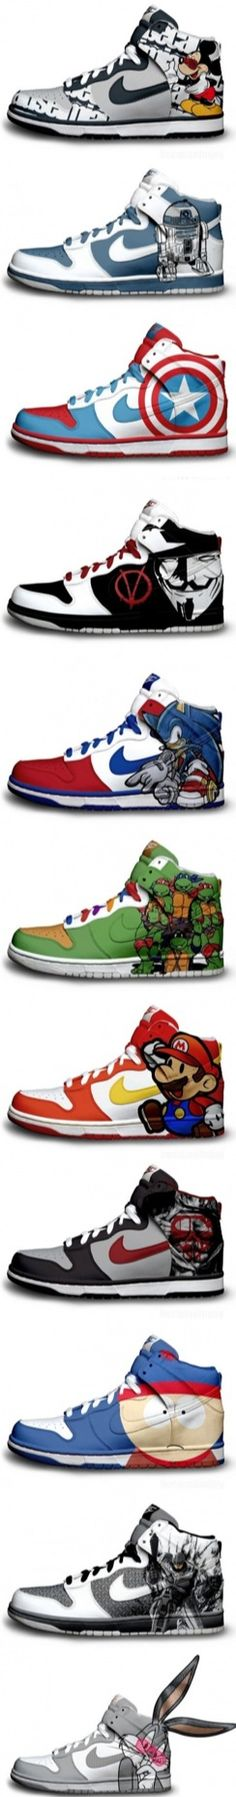 I usually don't like nikes but theses are cool ideas